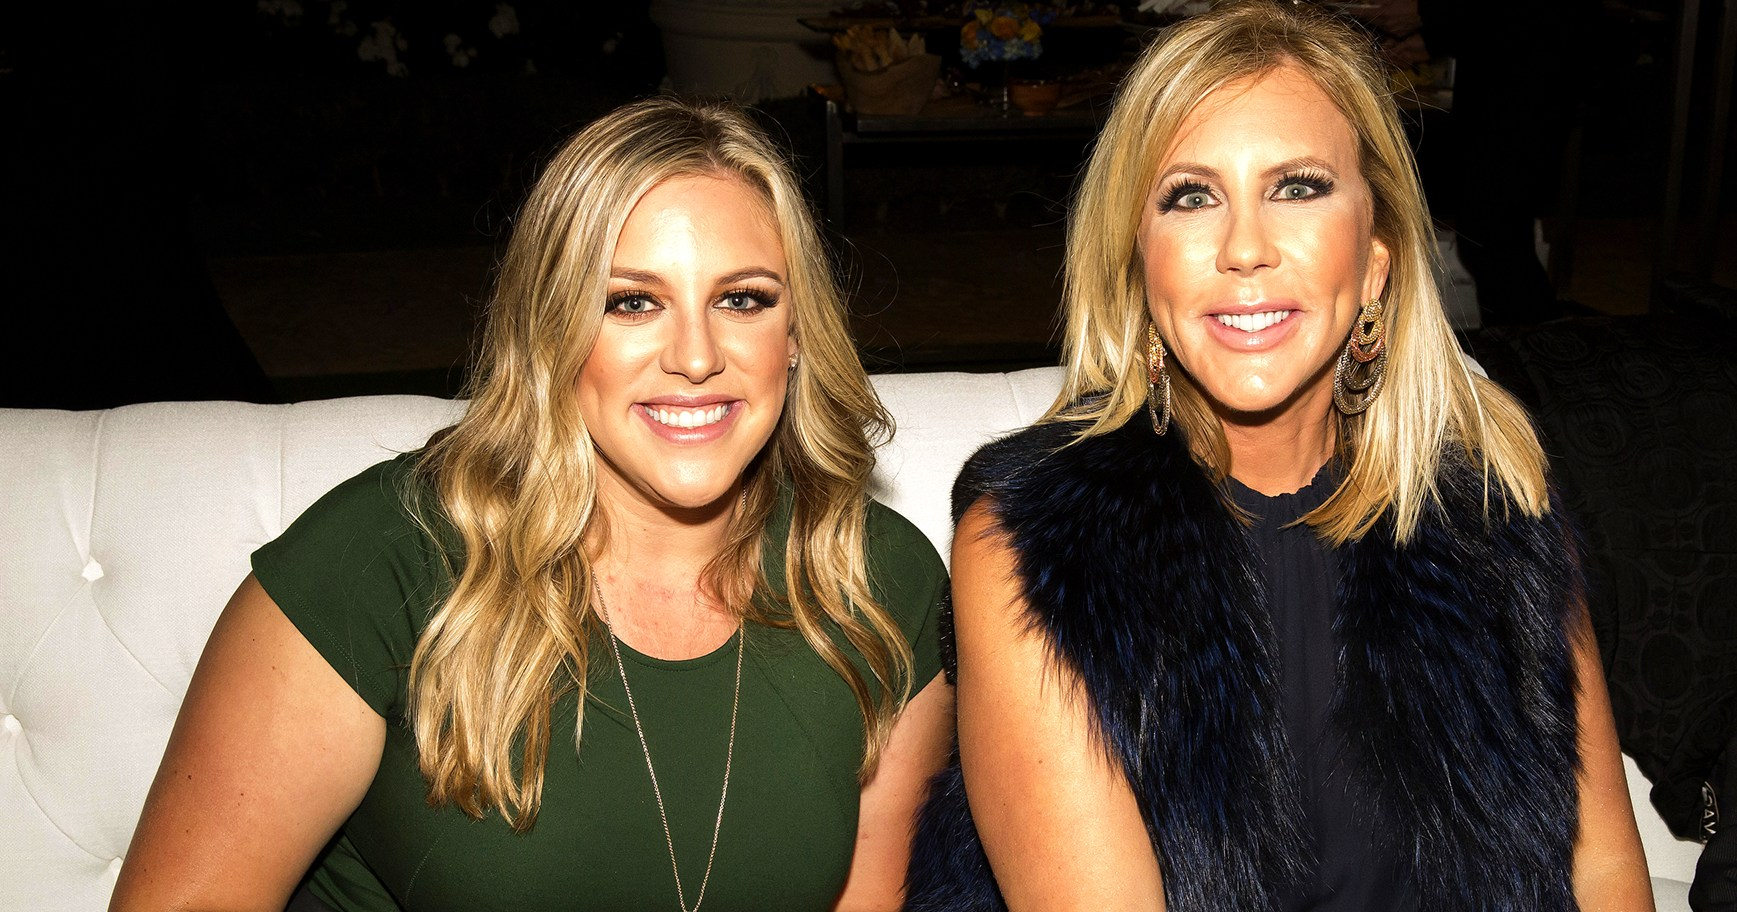 Vicki Gunvalson's Daughter, Briana Culberson, Shares Before and After Keto Diet Photos: 'I've Lost 45 Lbs'